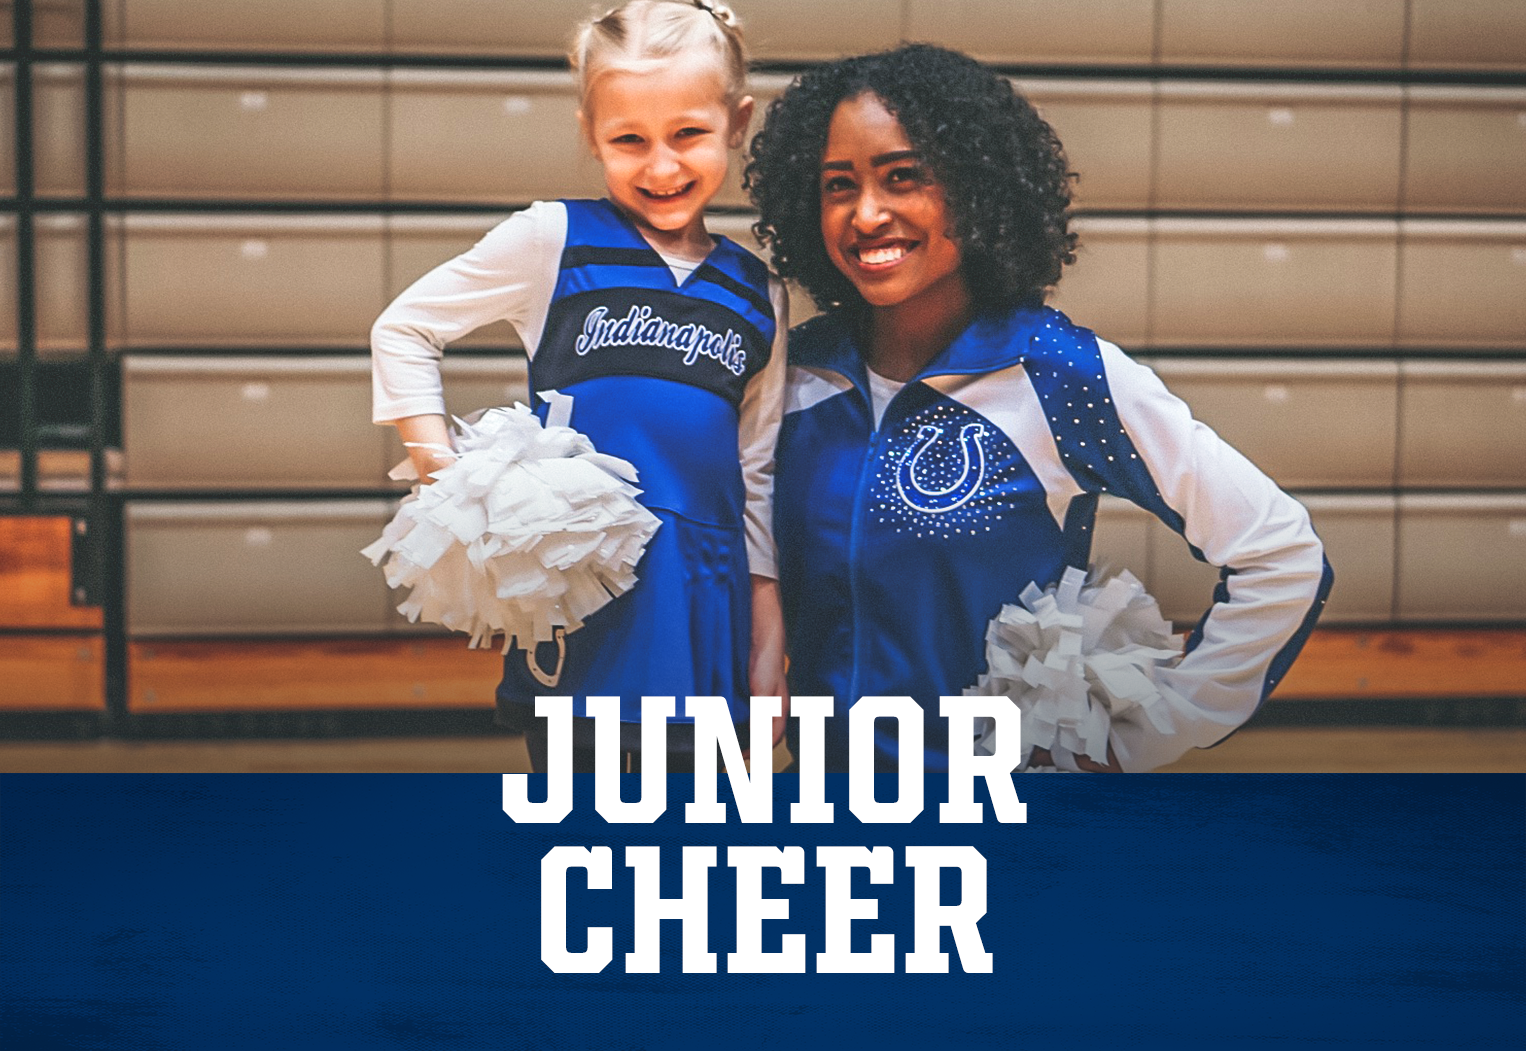 Indianapolis Colts Junior Cheer